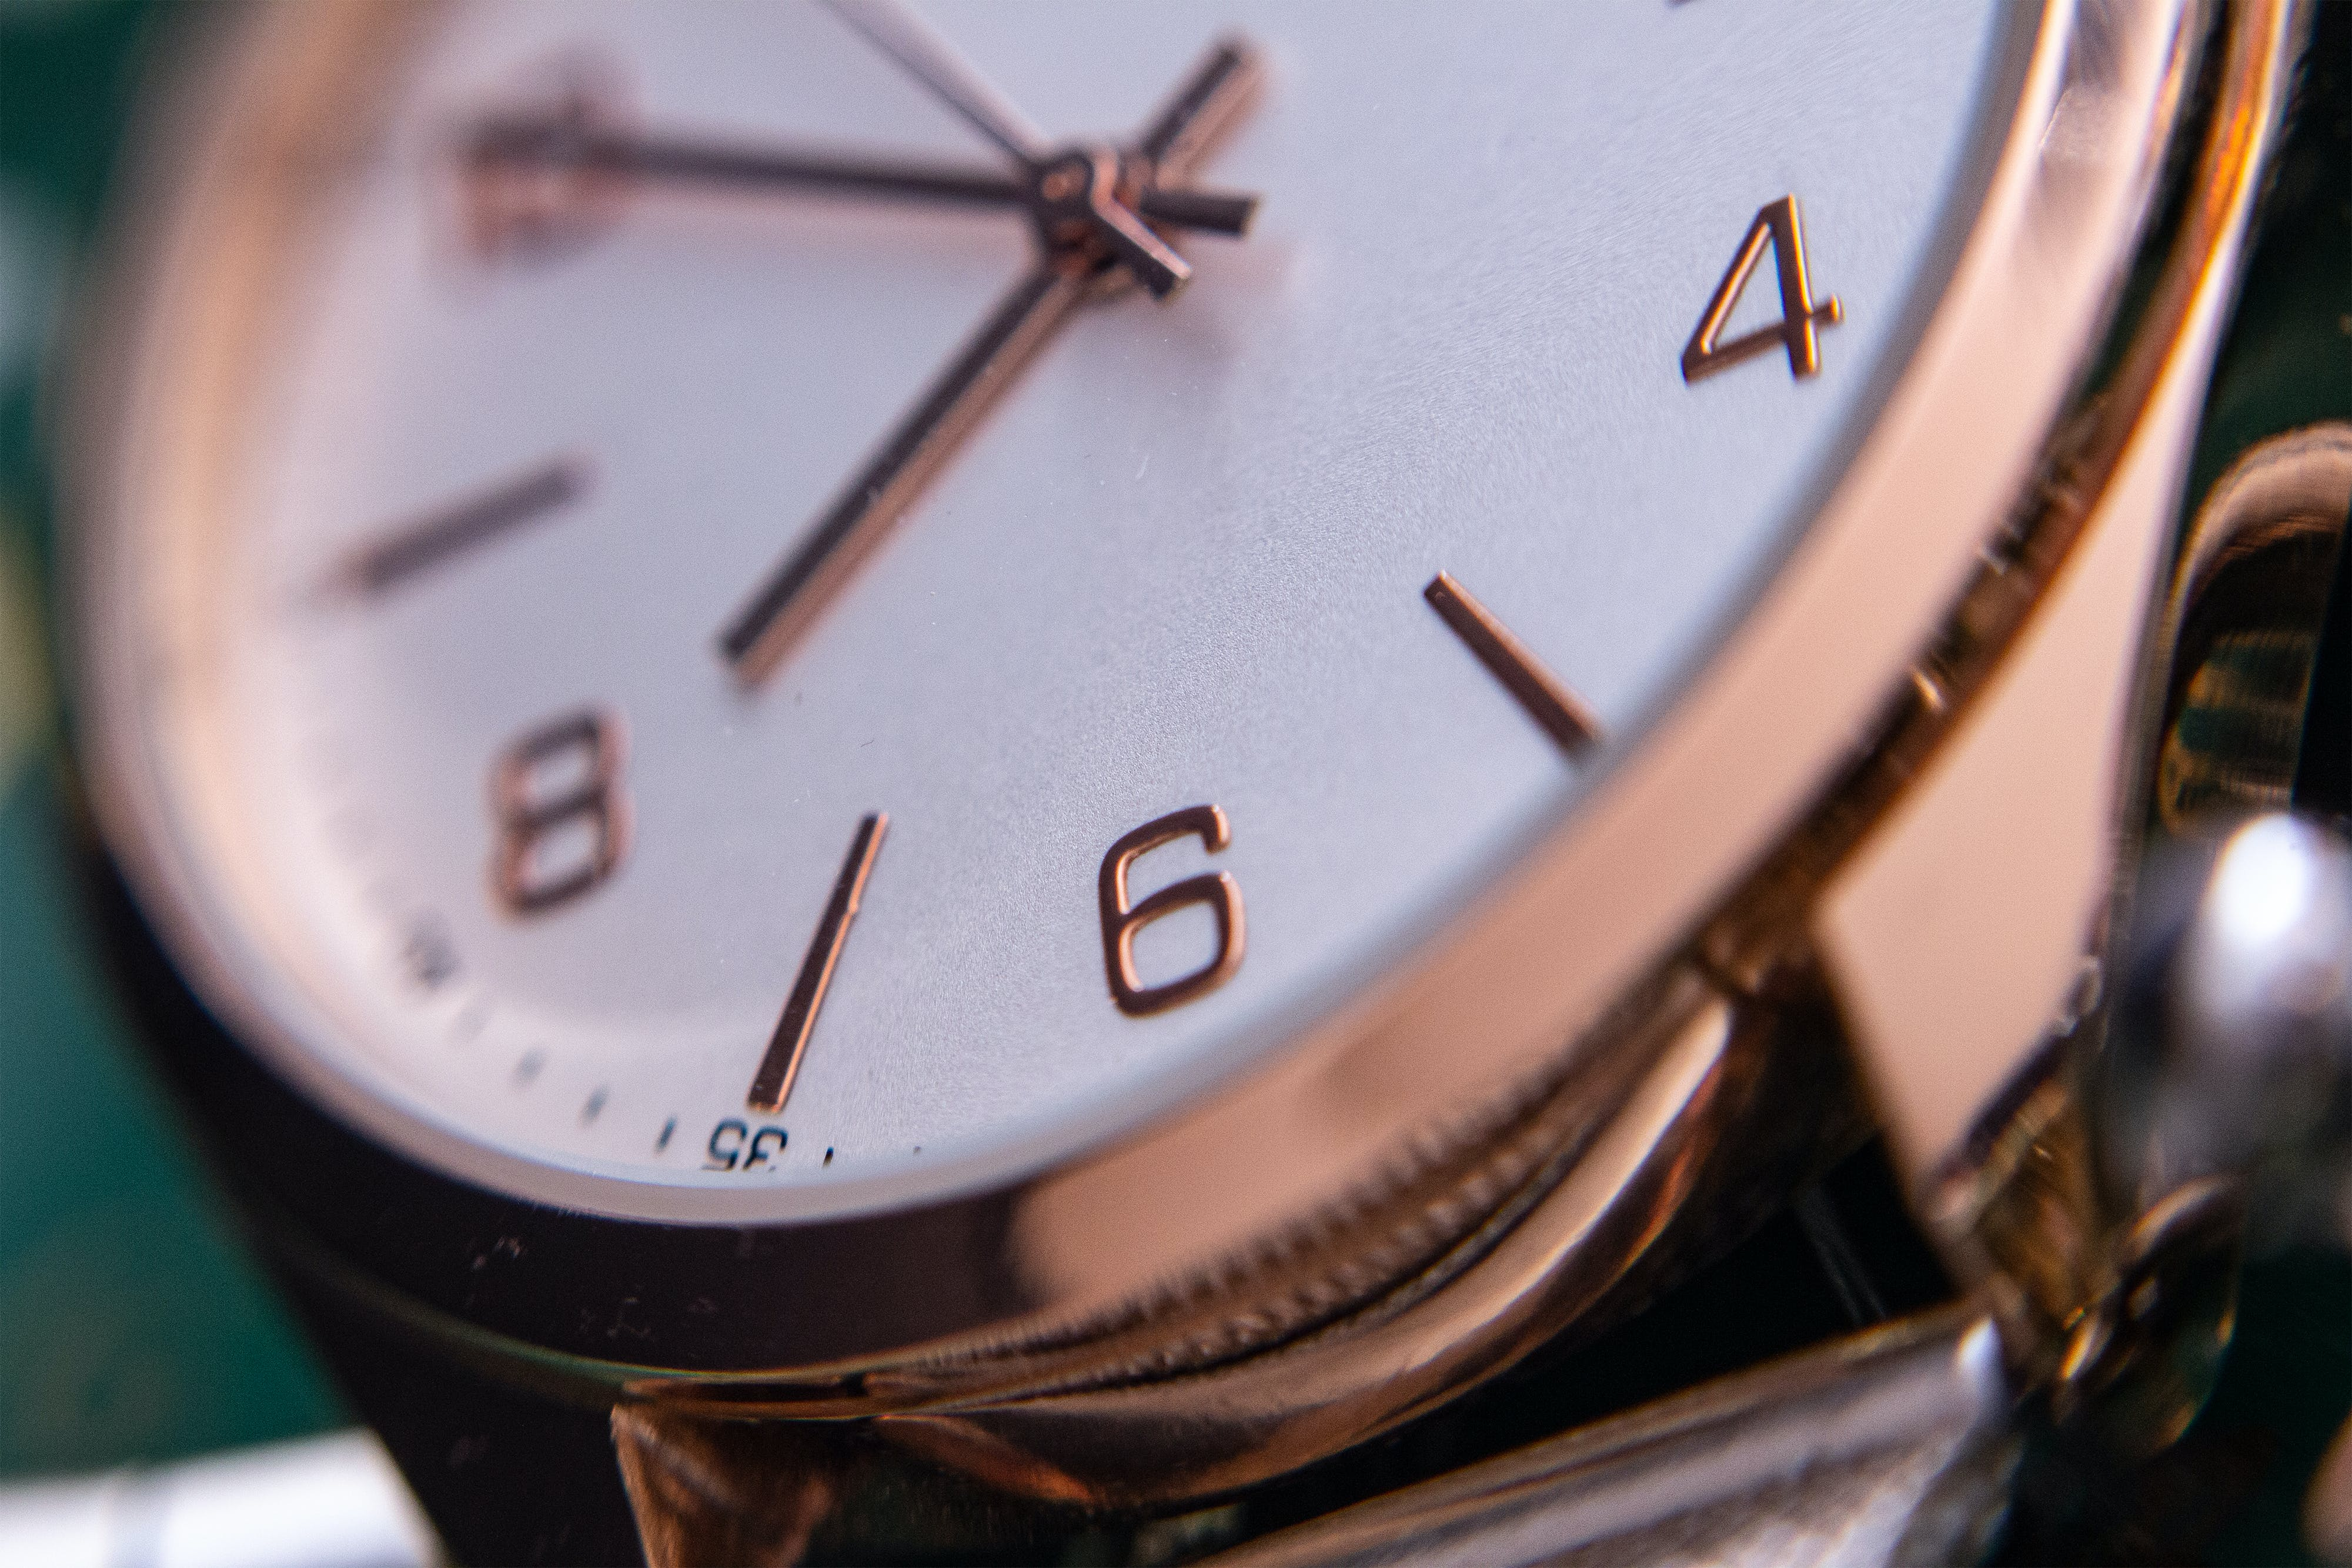 Free stock photo of Analog watch, clock, hands of watch, macro